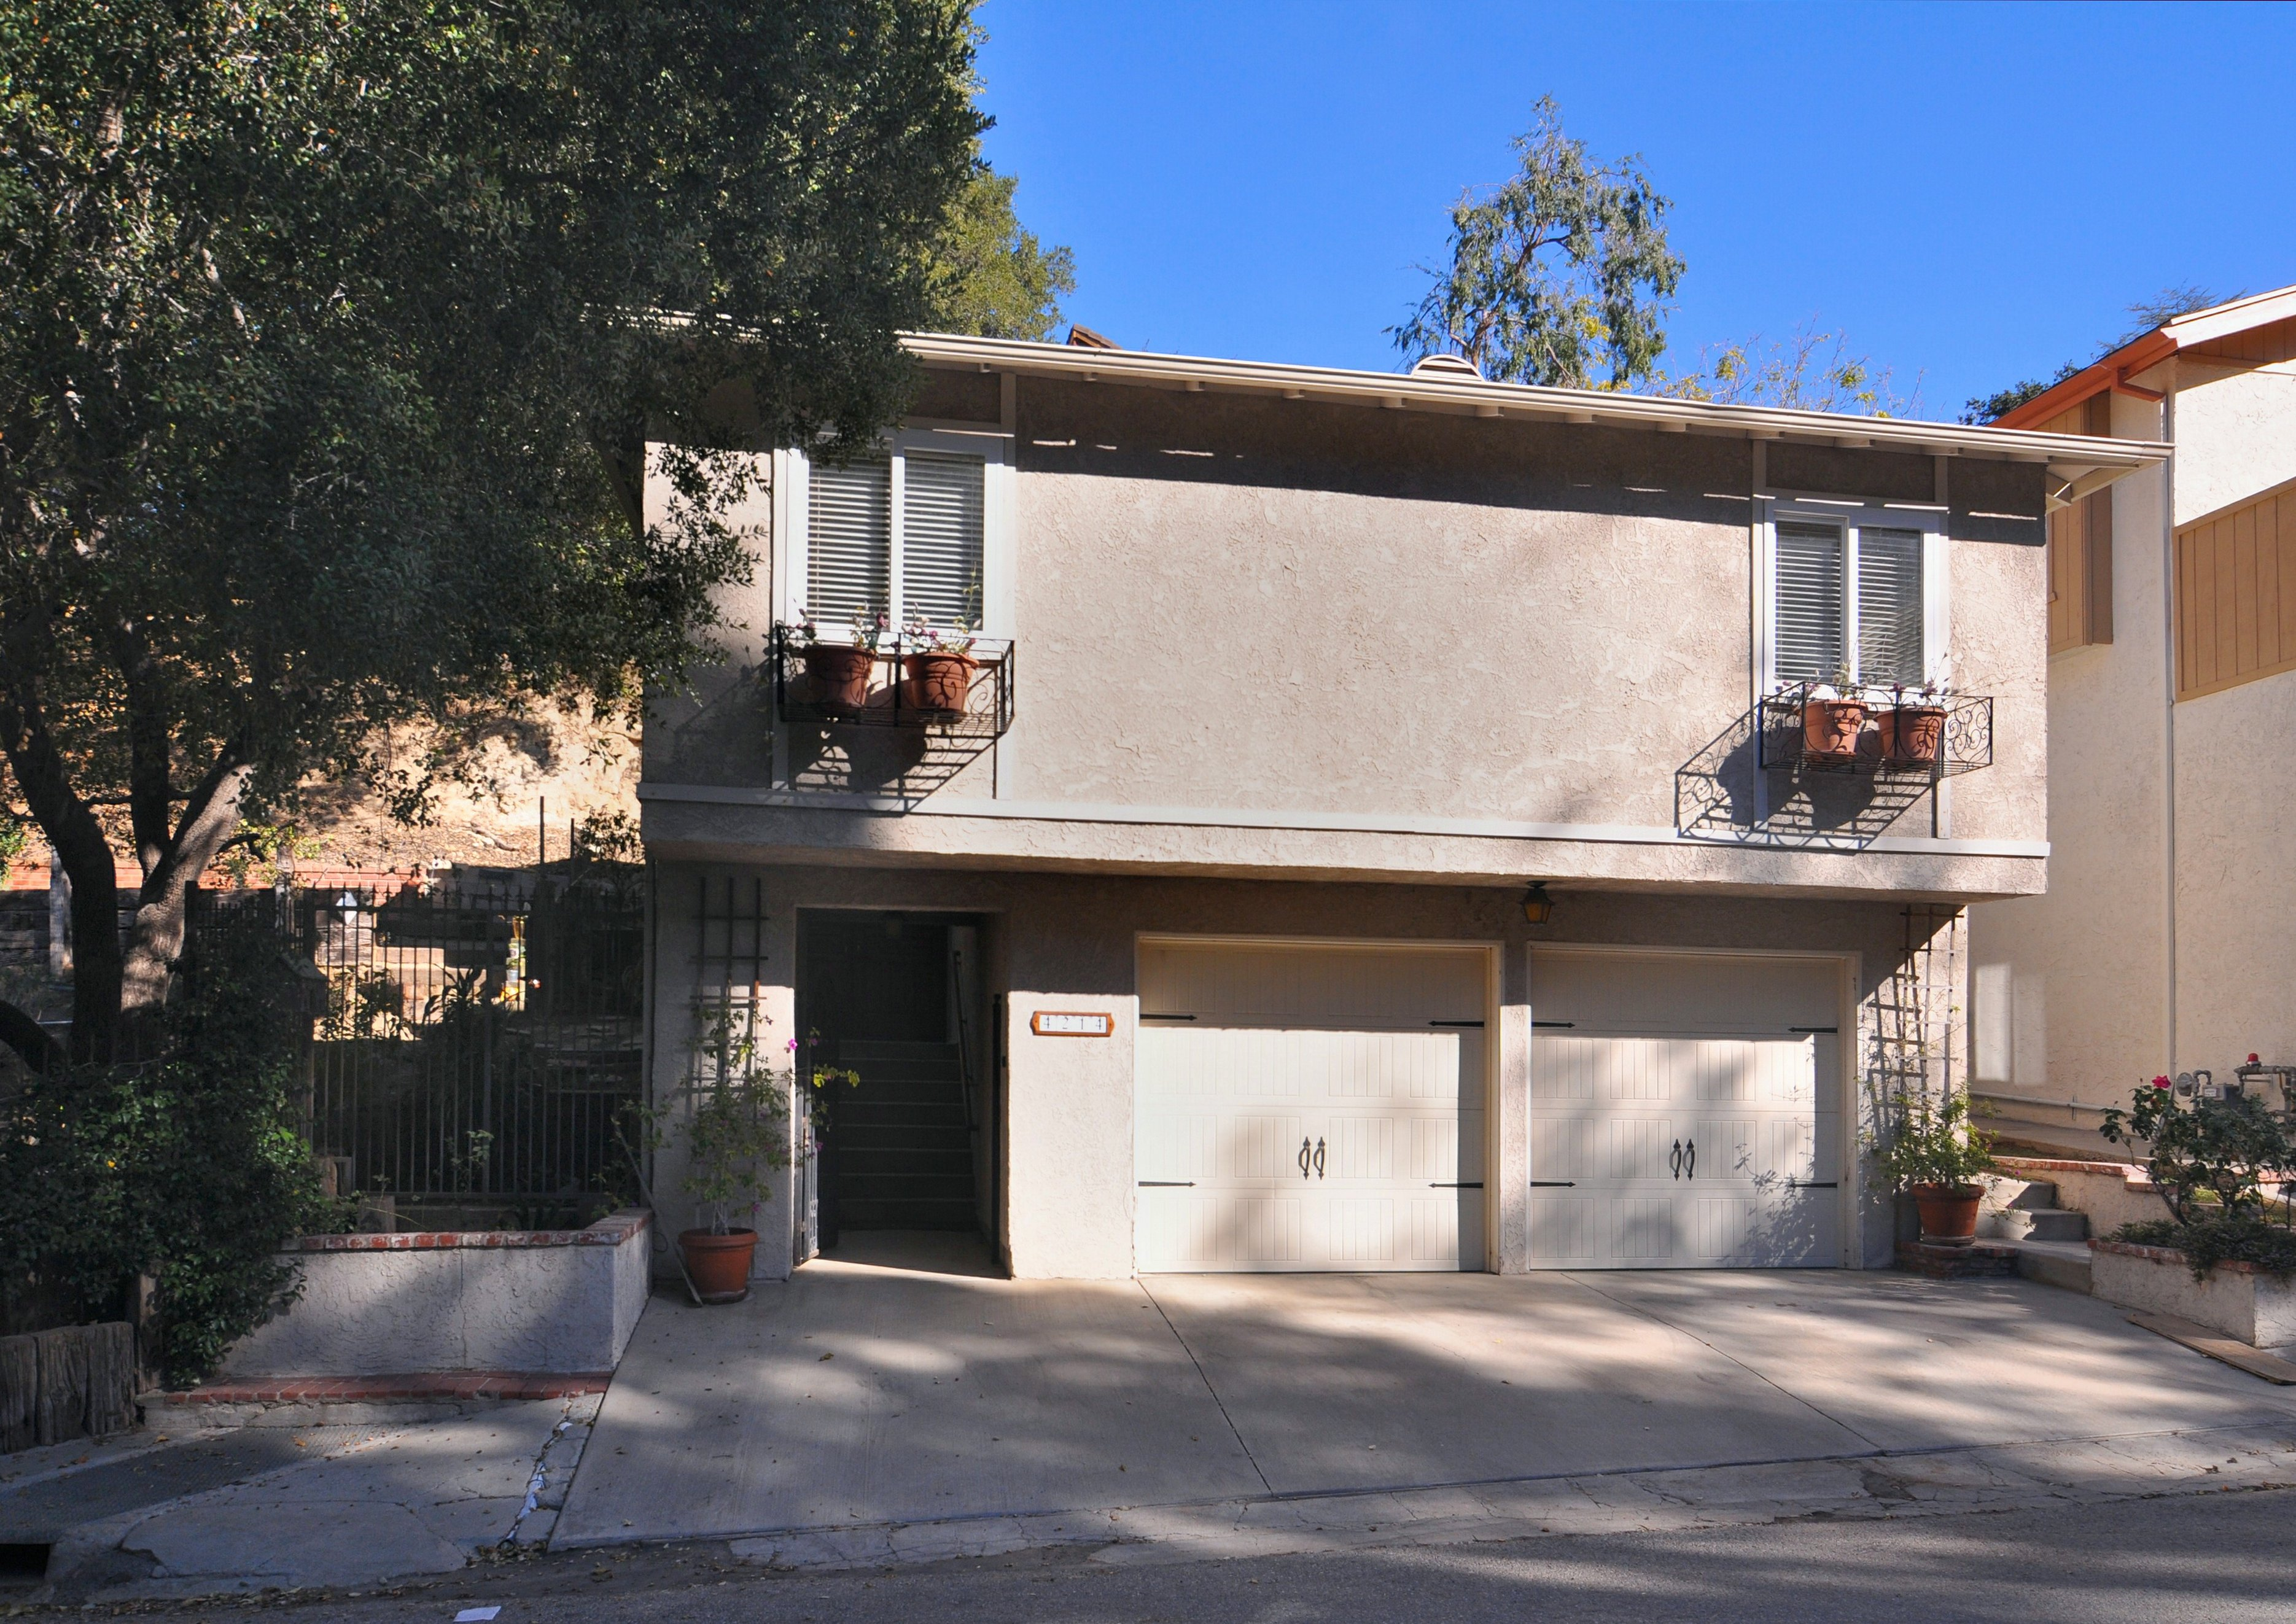 Single Family Home for Sale at 4214 Morro Drive Woodland Hills, California, 91364 United States